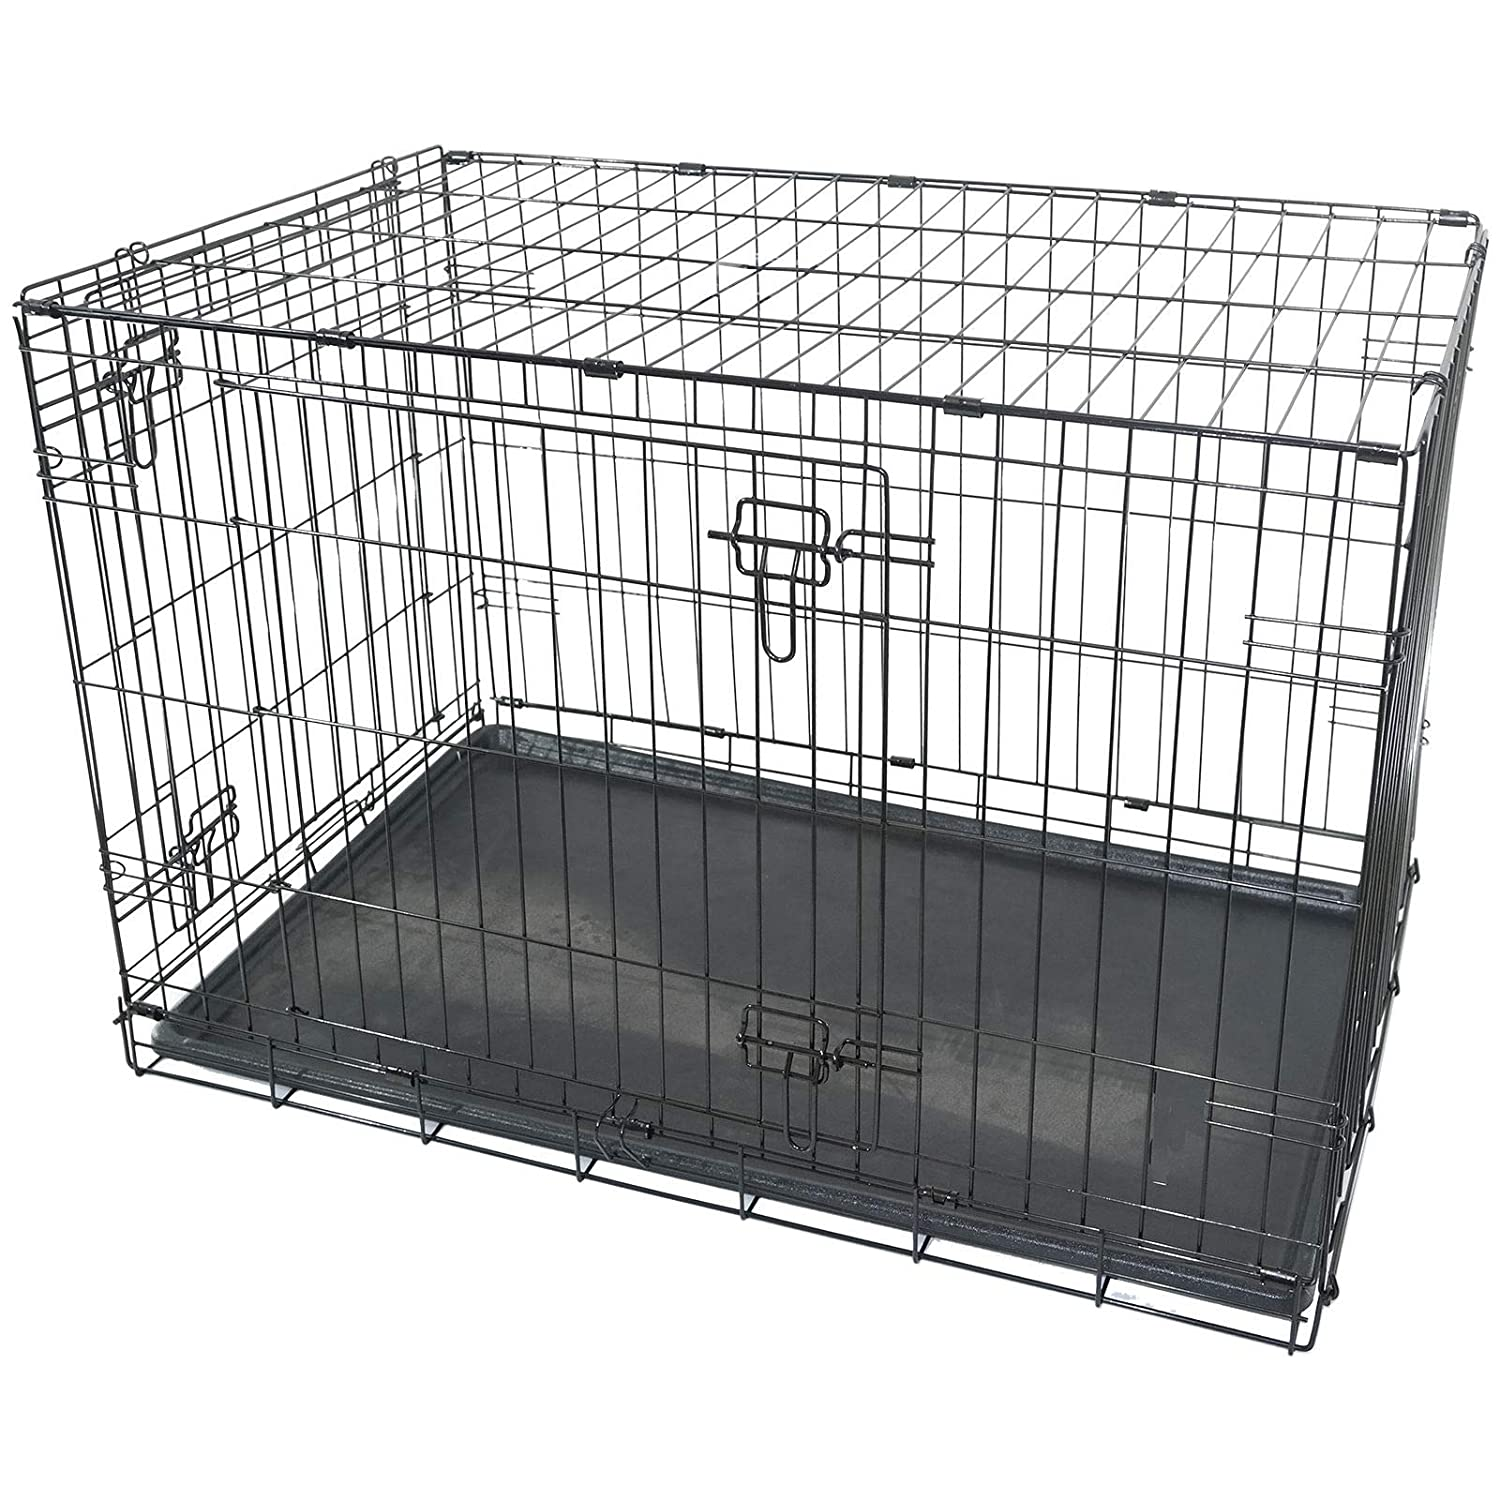 Generic NDLE TRANSPORTUPPY FOLDI PET PUPPY LARGE DOG FOLDING METAL CAGE CRATE CAGE CARRIER HANDLE TRANSPORT LARGE DOG CAGE CRATE